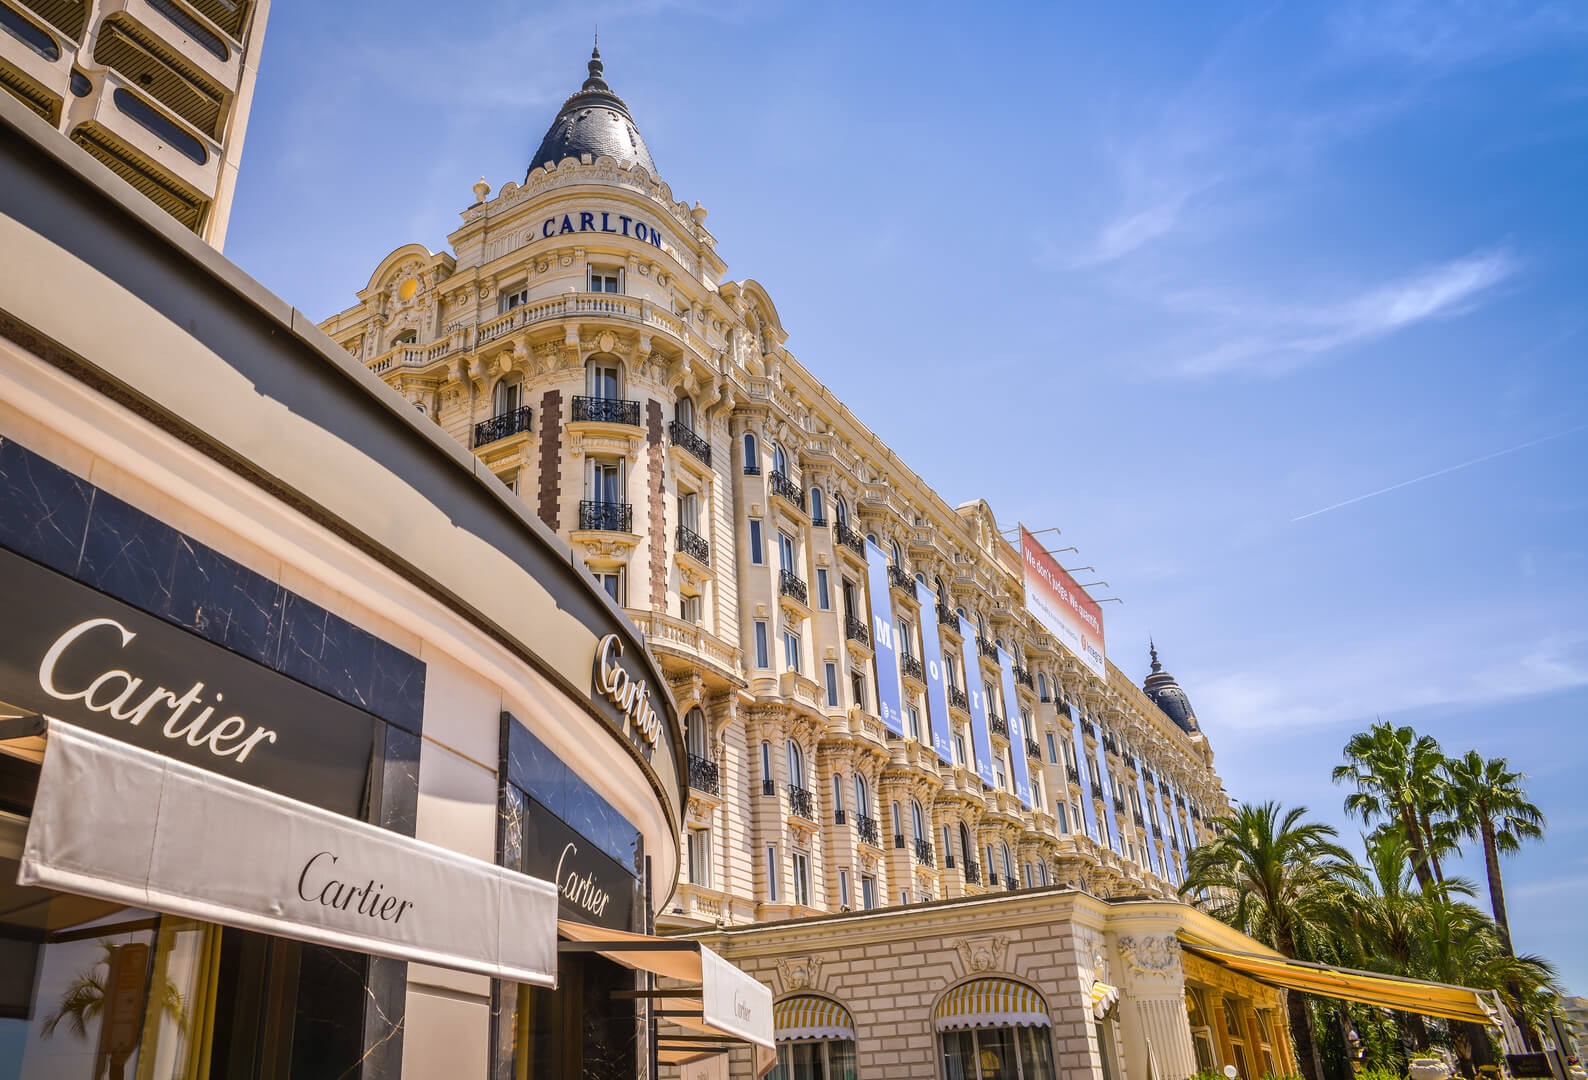 A general view of Hotel CARLTON CANNES and expensive shops along the Croisette.